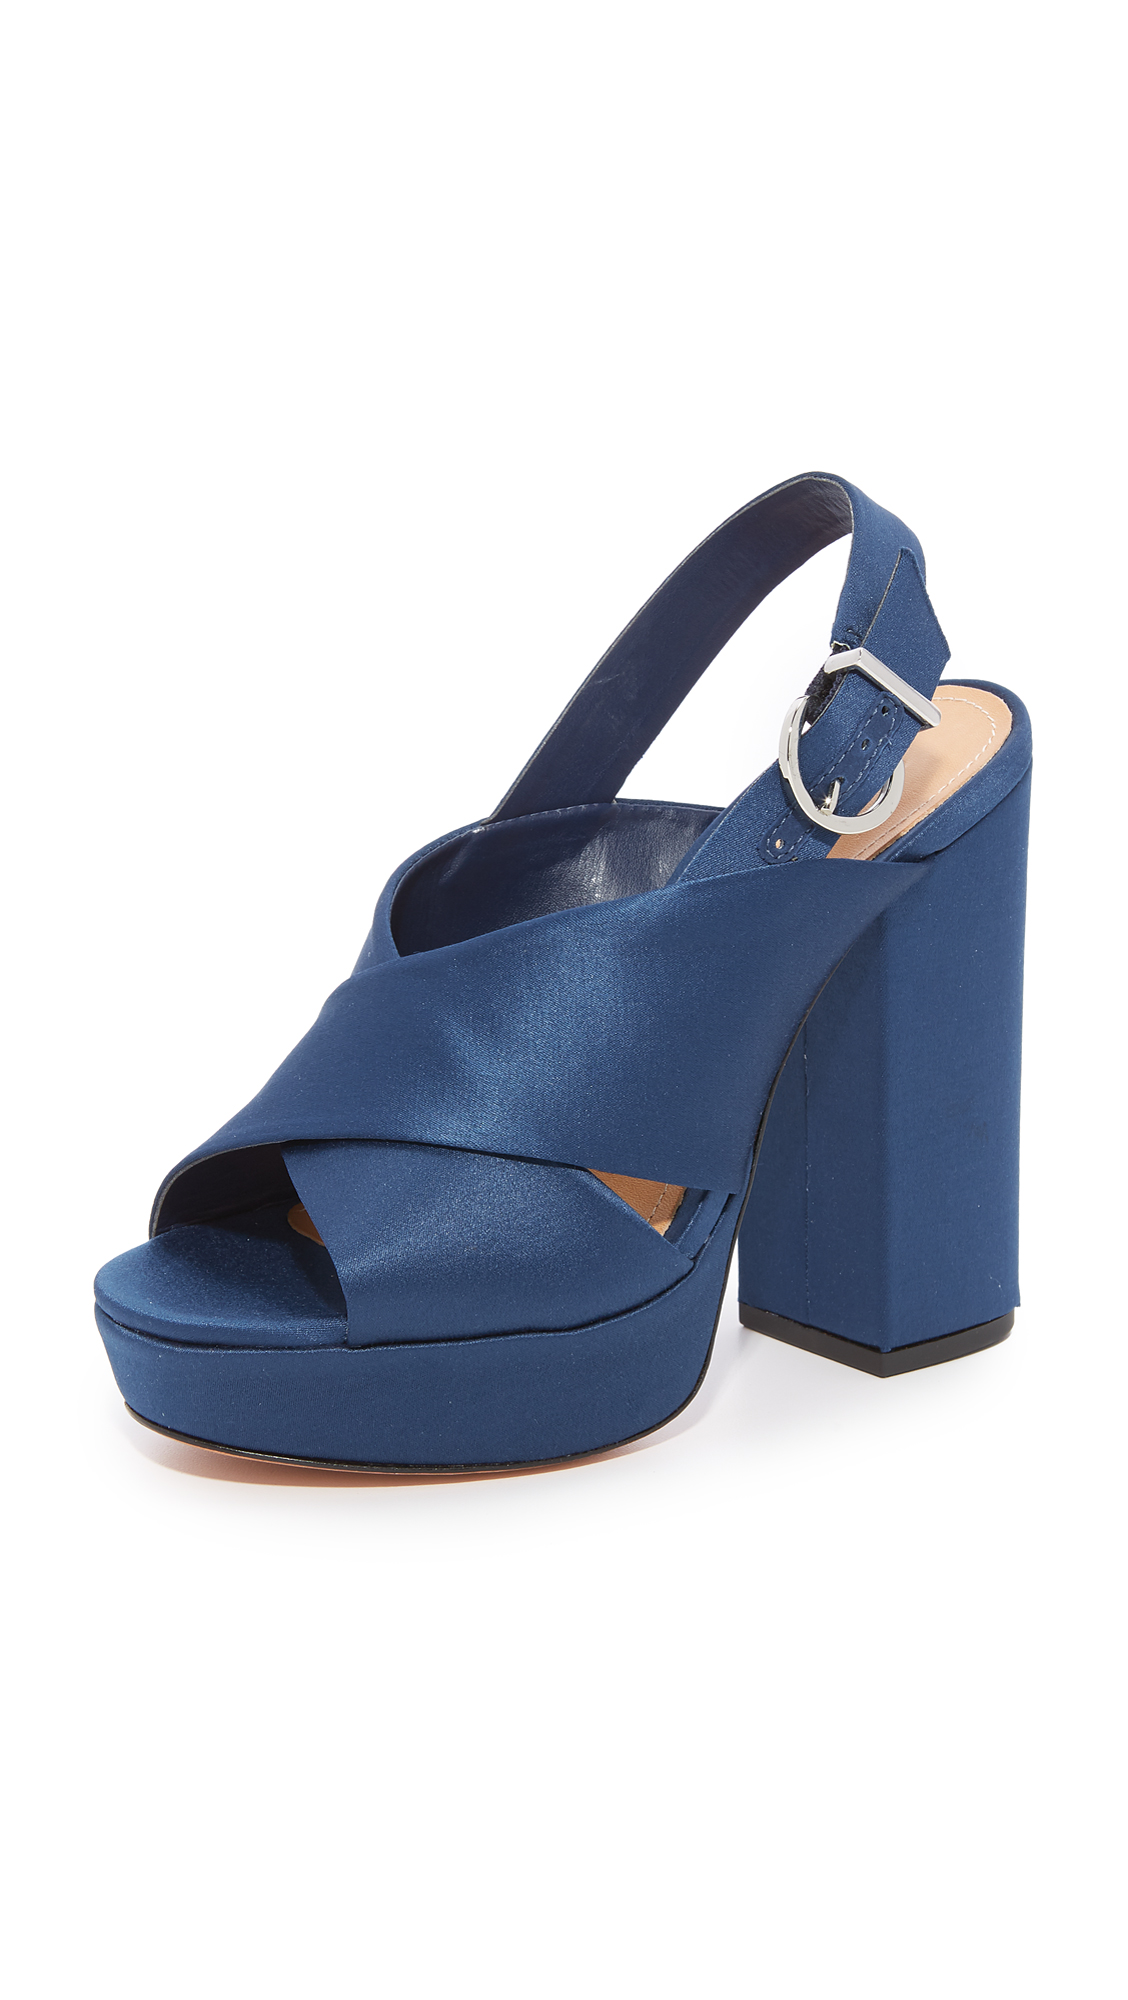 Schutz Millie Peep Toe Heels - Dress Blue